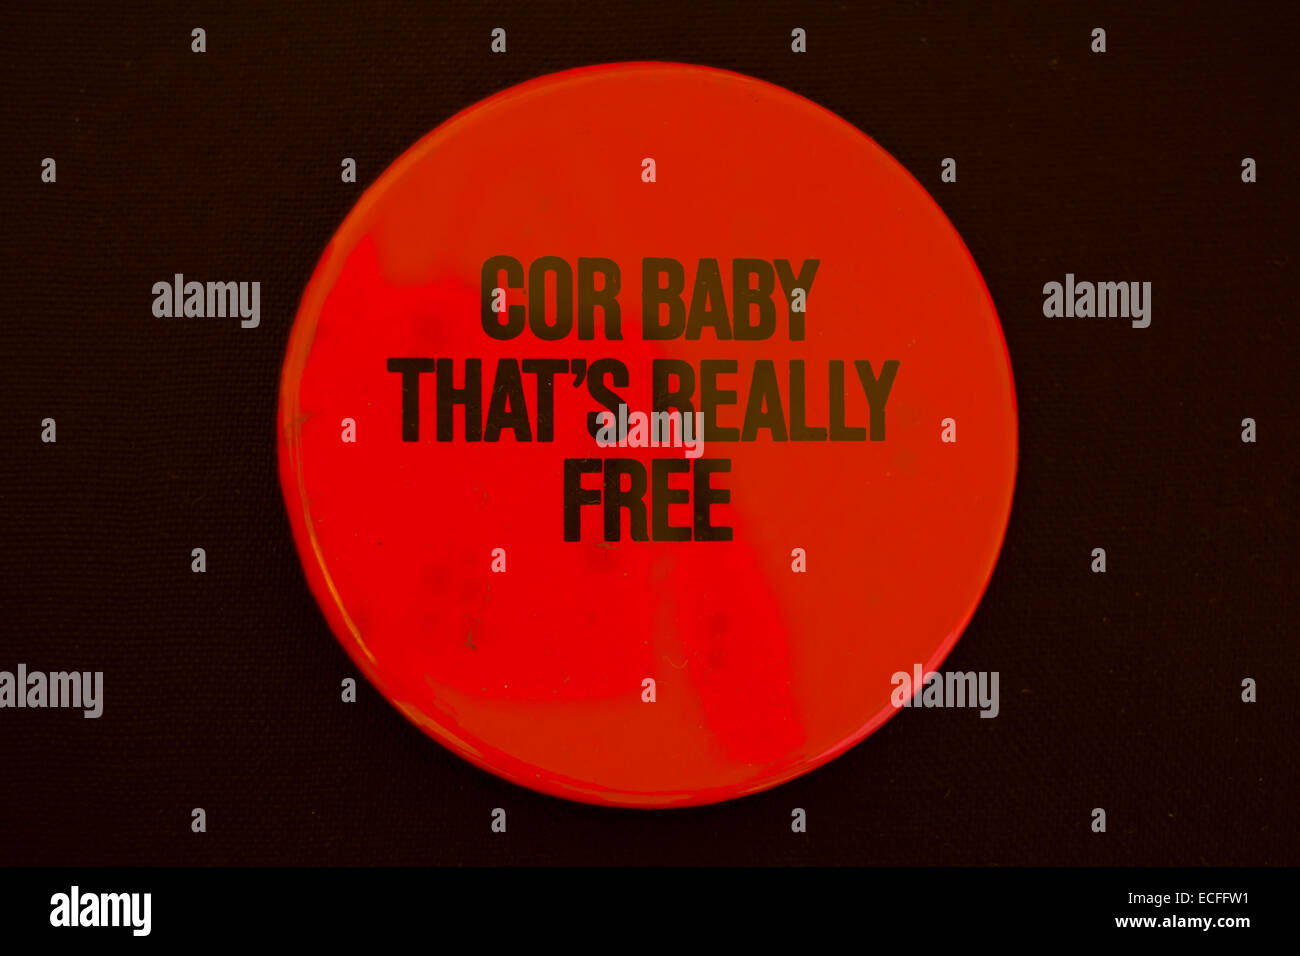 cor baby that's really free, lapel badge promoting a 1977 single by singer john otway - Stock Image